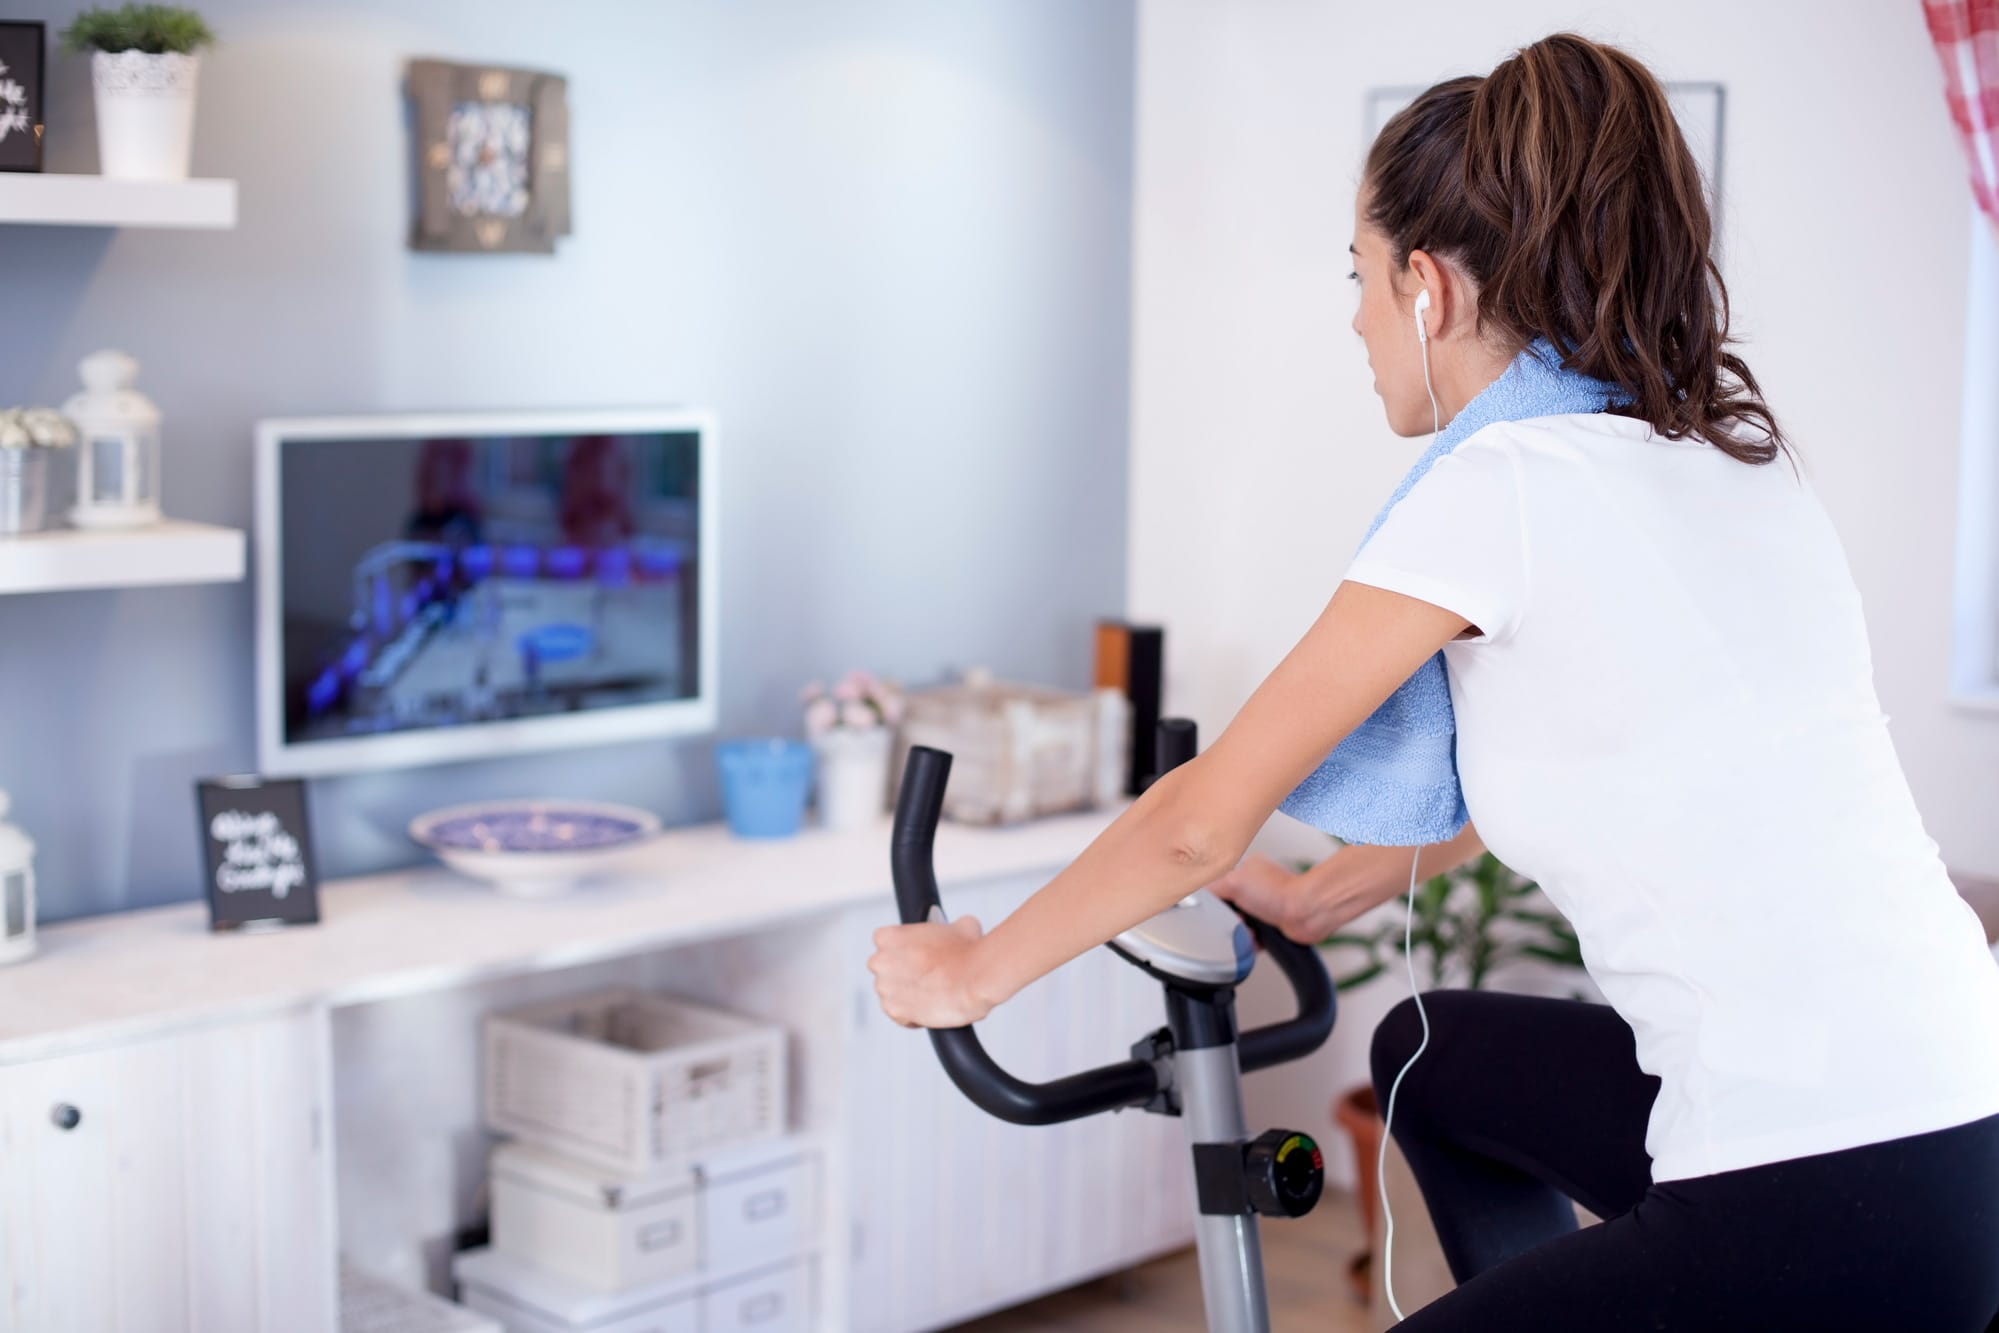 Woman riding a stationary bike at home, watching TV with earbuds